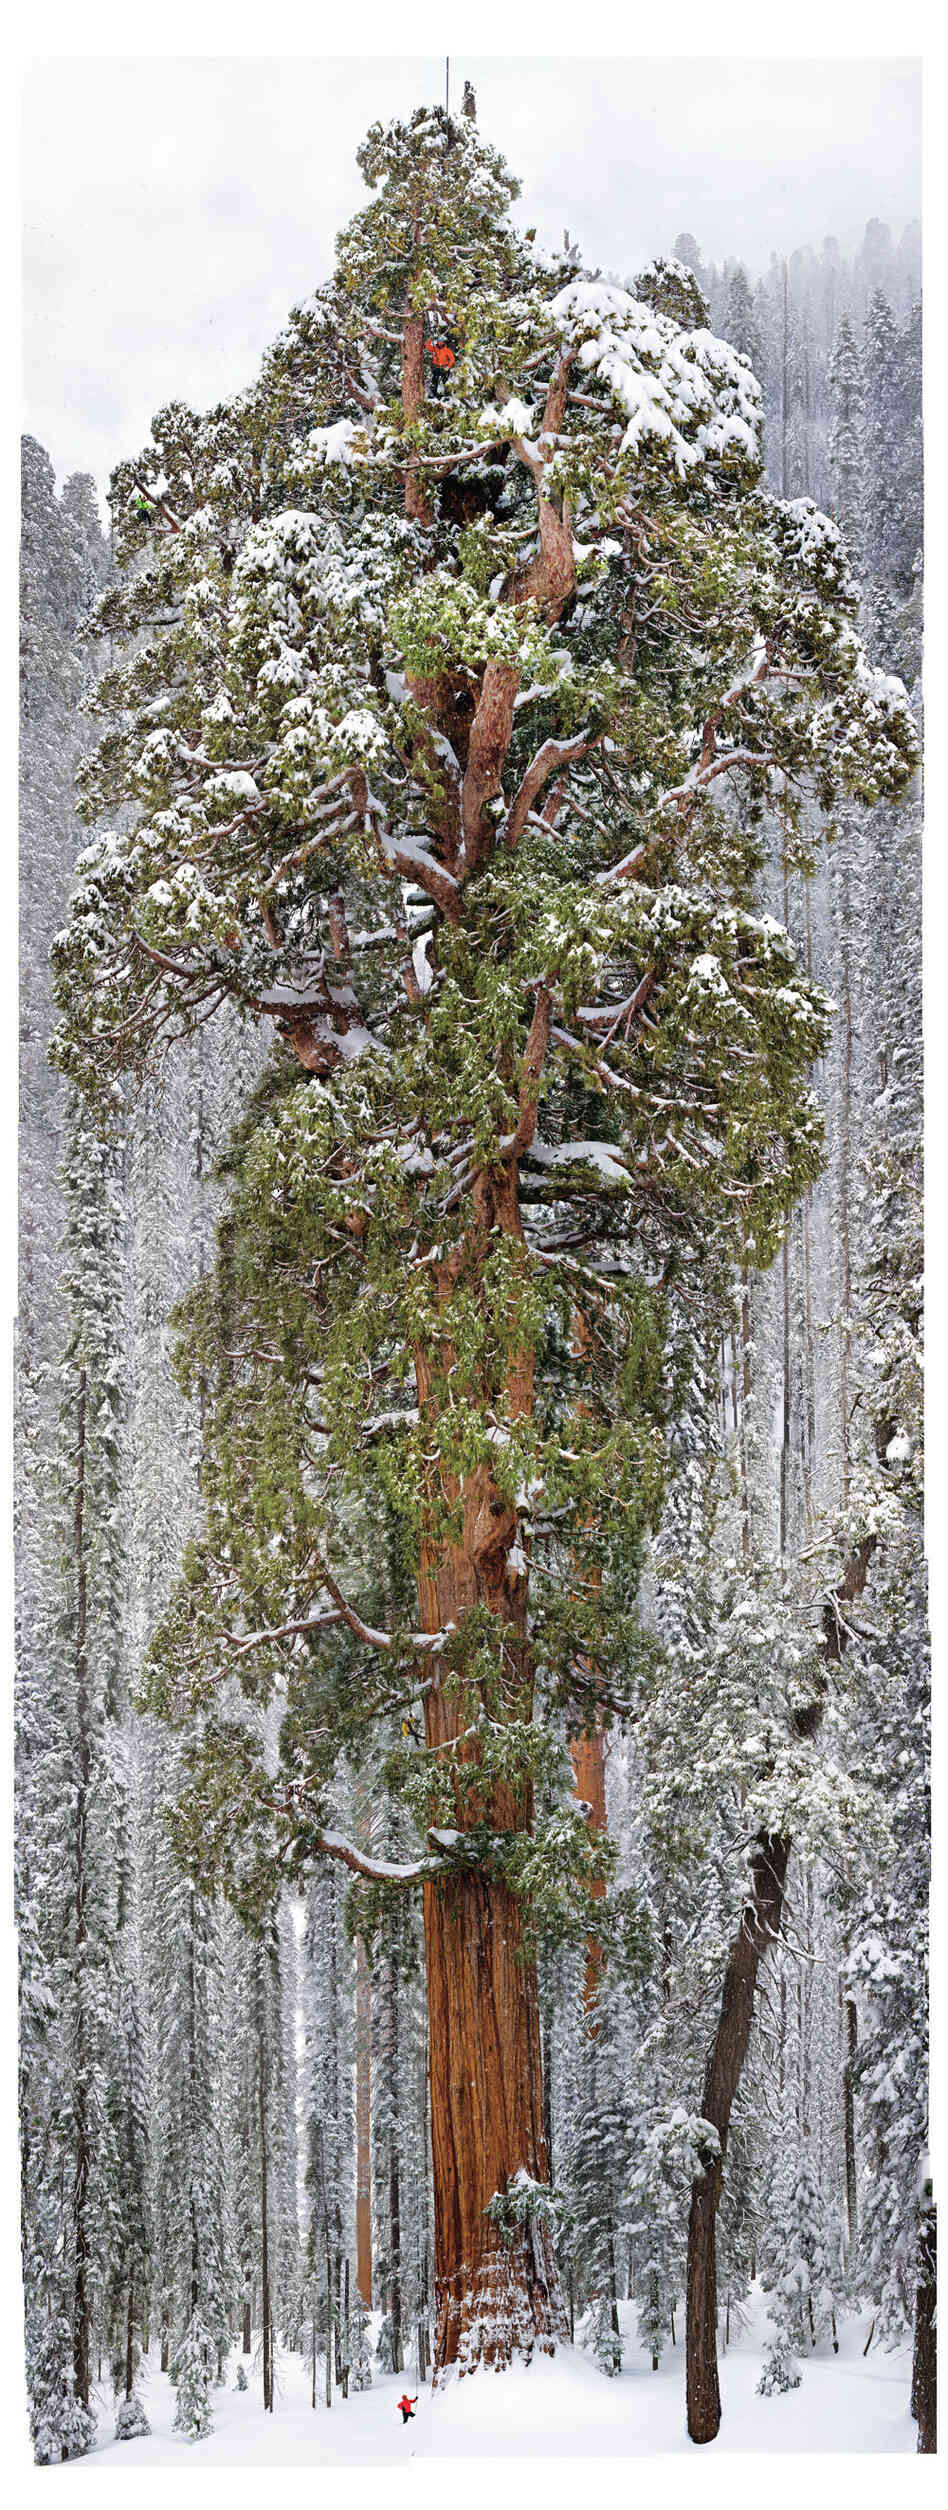 Cloaked in the snows of California's Sierra Nevada, the 3,200-year-